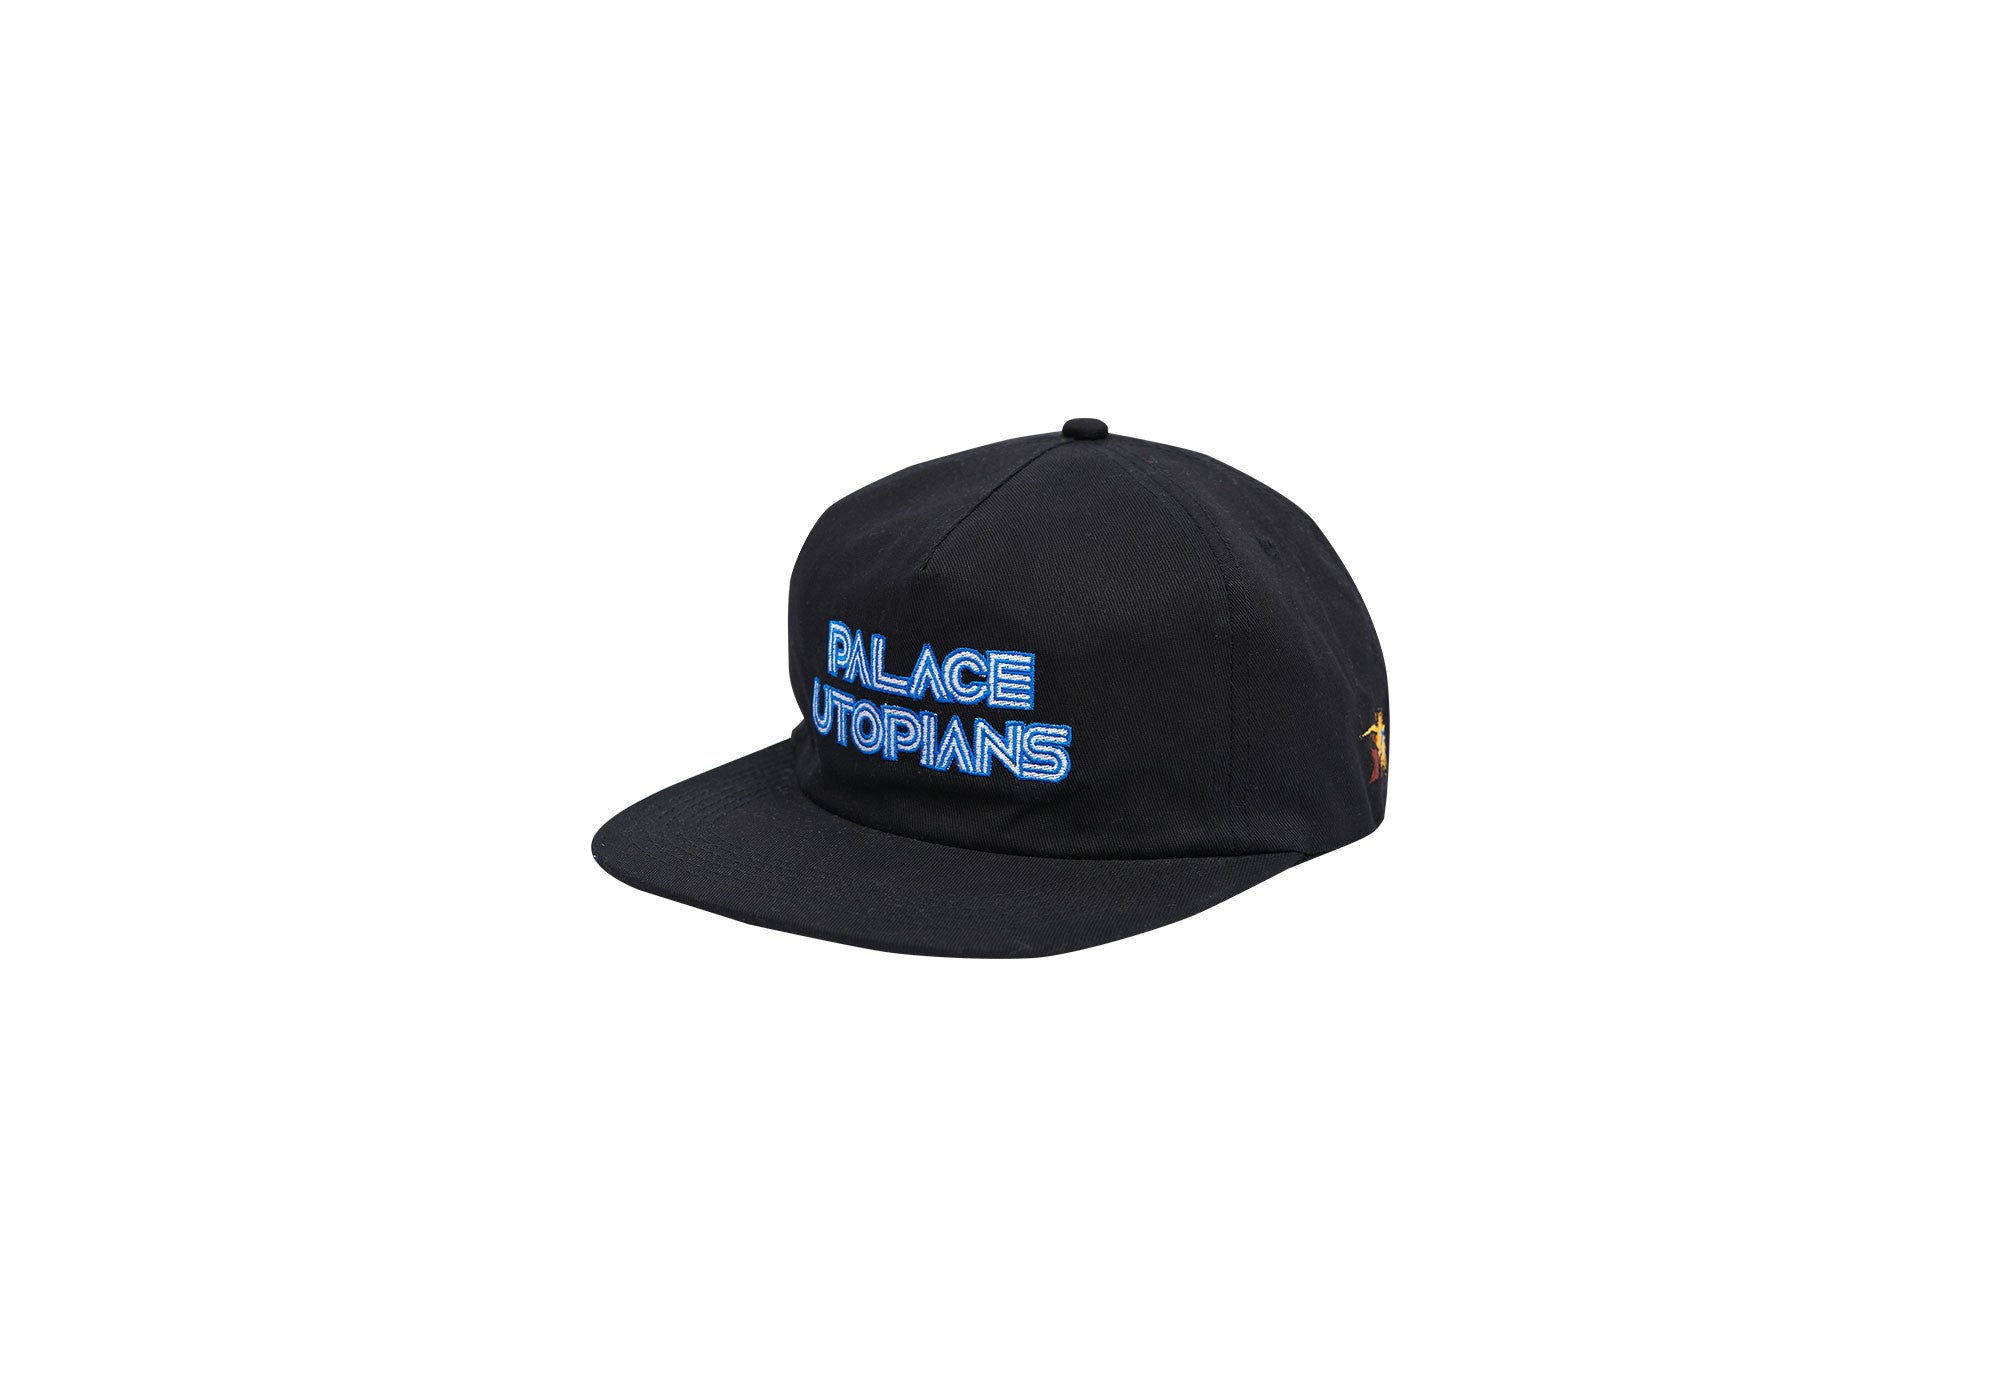 PALACE UTOPIANS 5-PANEL BLACK